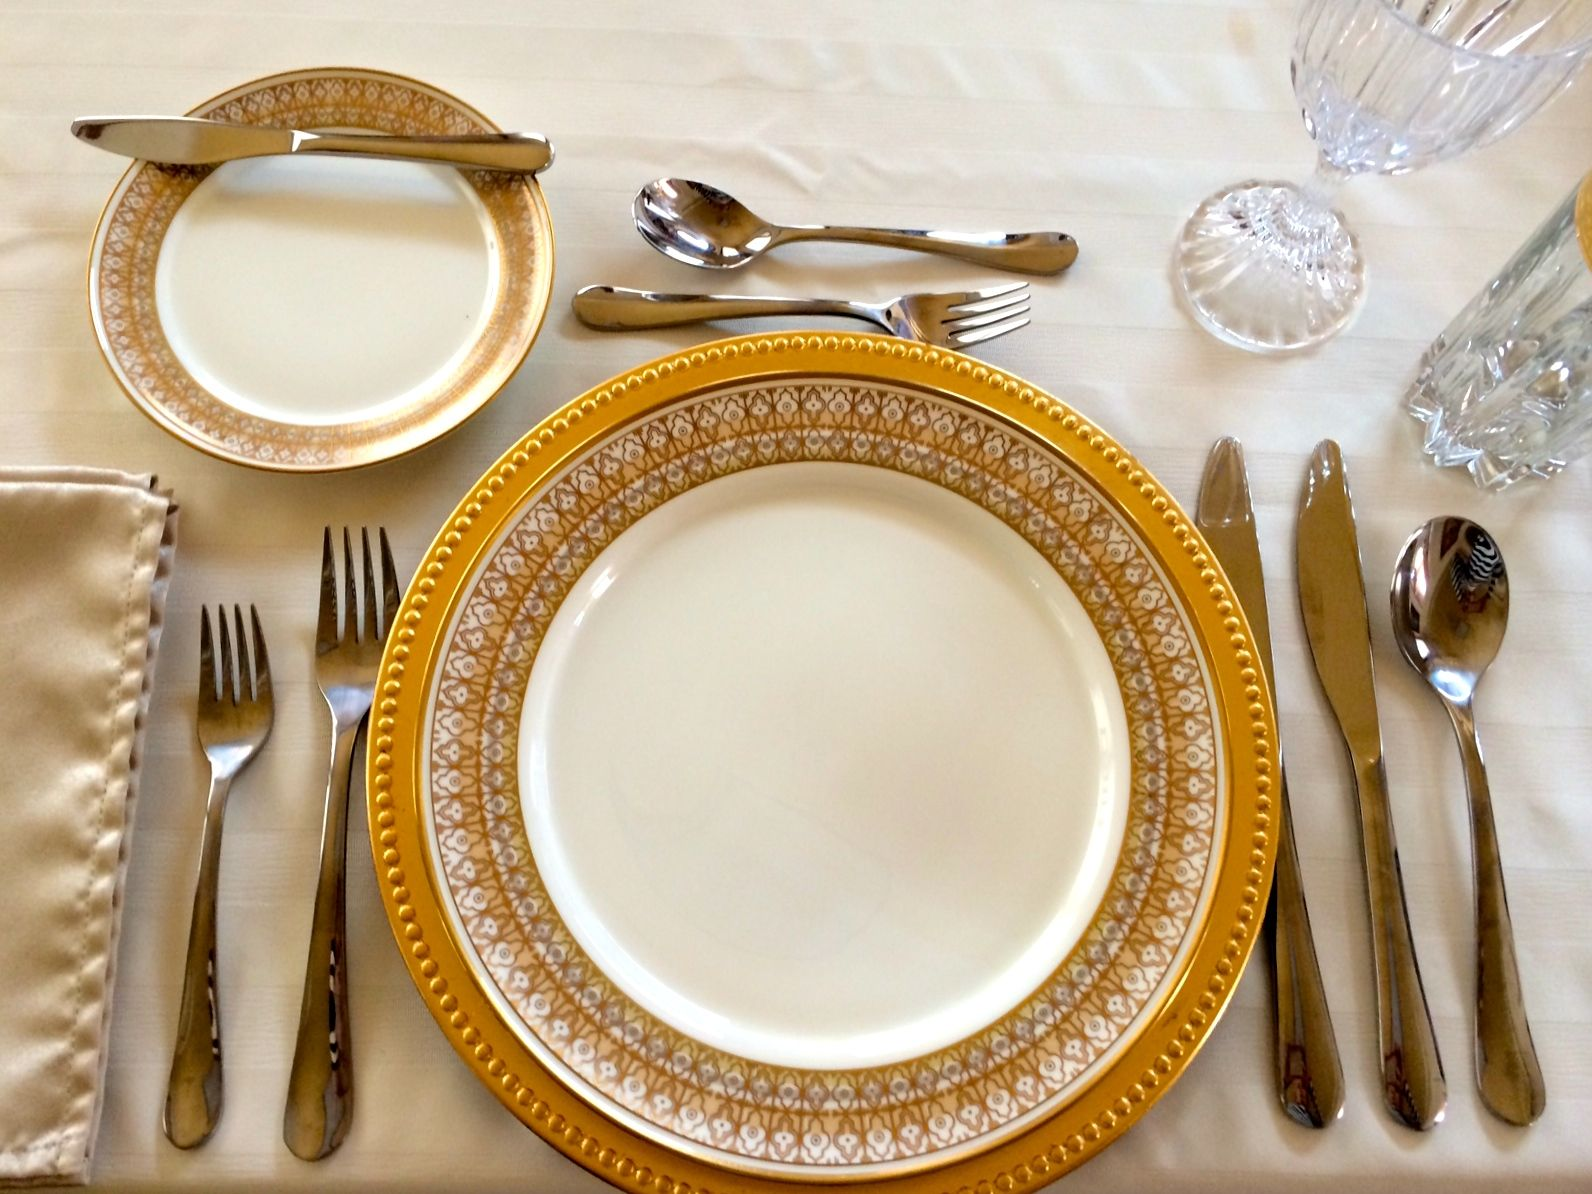 This is a standard and correctly set 4-course table setting. The dinner planned includes a soup course FIRST a salad (which requires cutting) SECOND ... & This is a standard and correctly set 4-course table setting. The ...